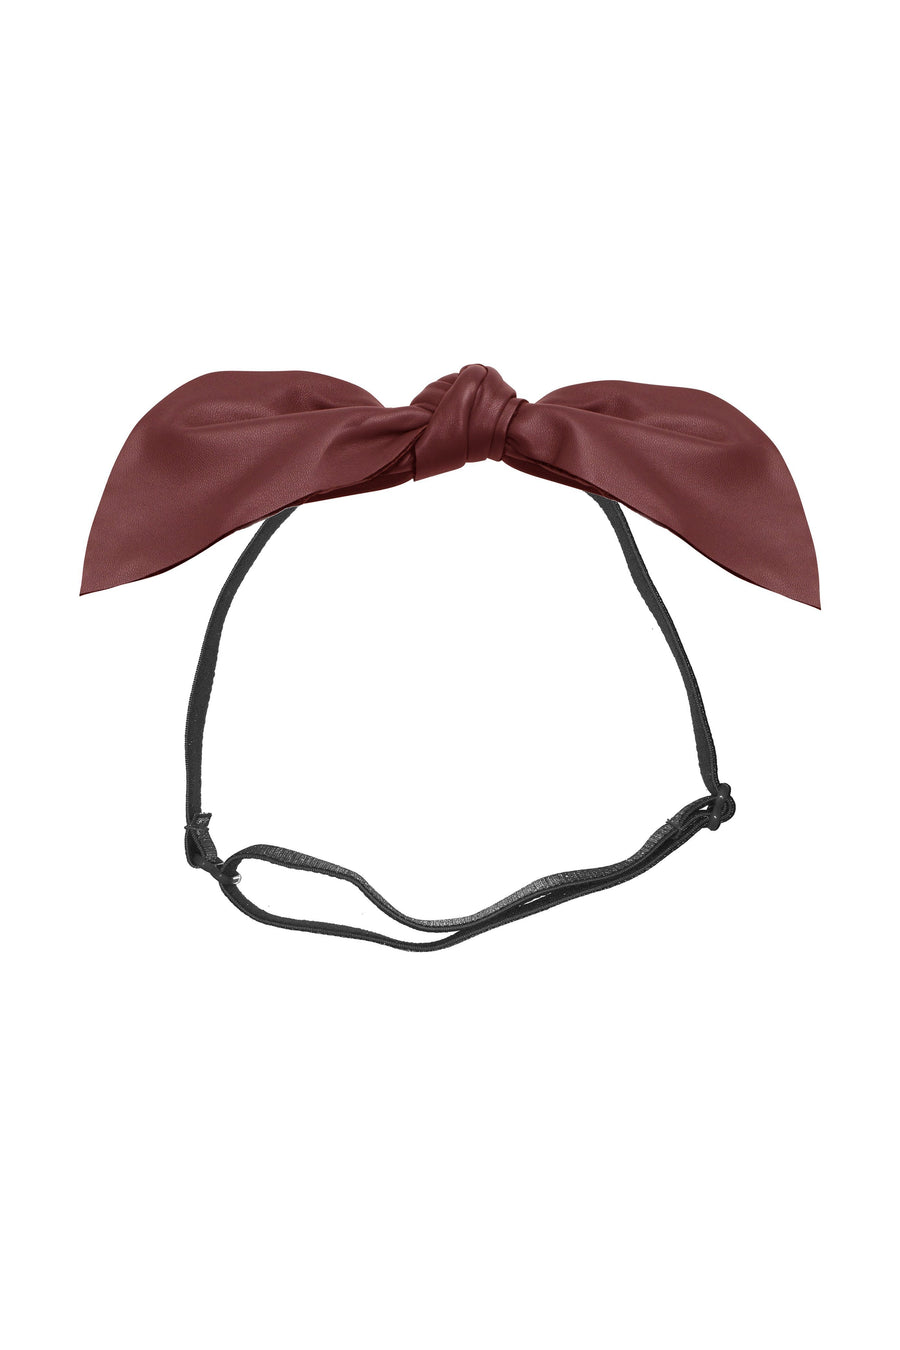 Perfect Leather Pointy Bow Wrap - Burgundy - PROJECT 6, modest fashion